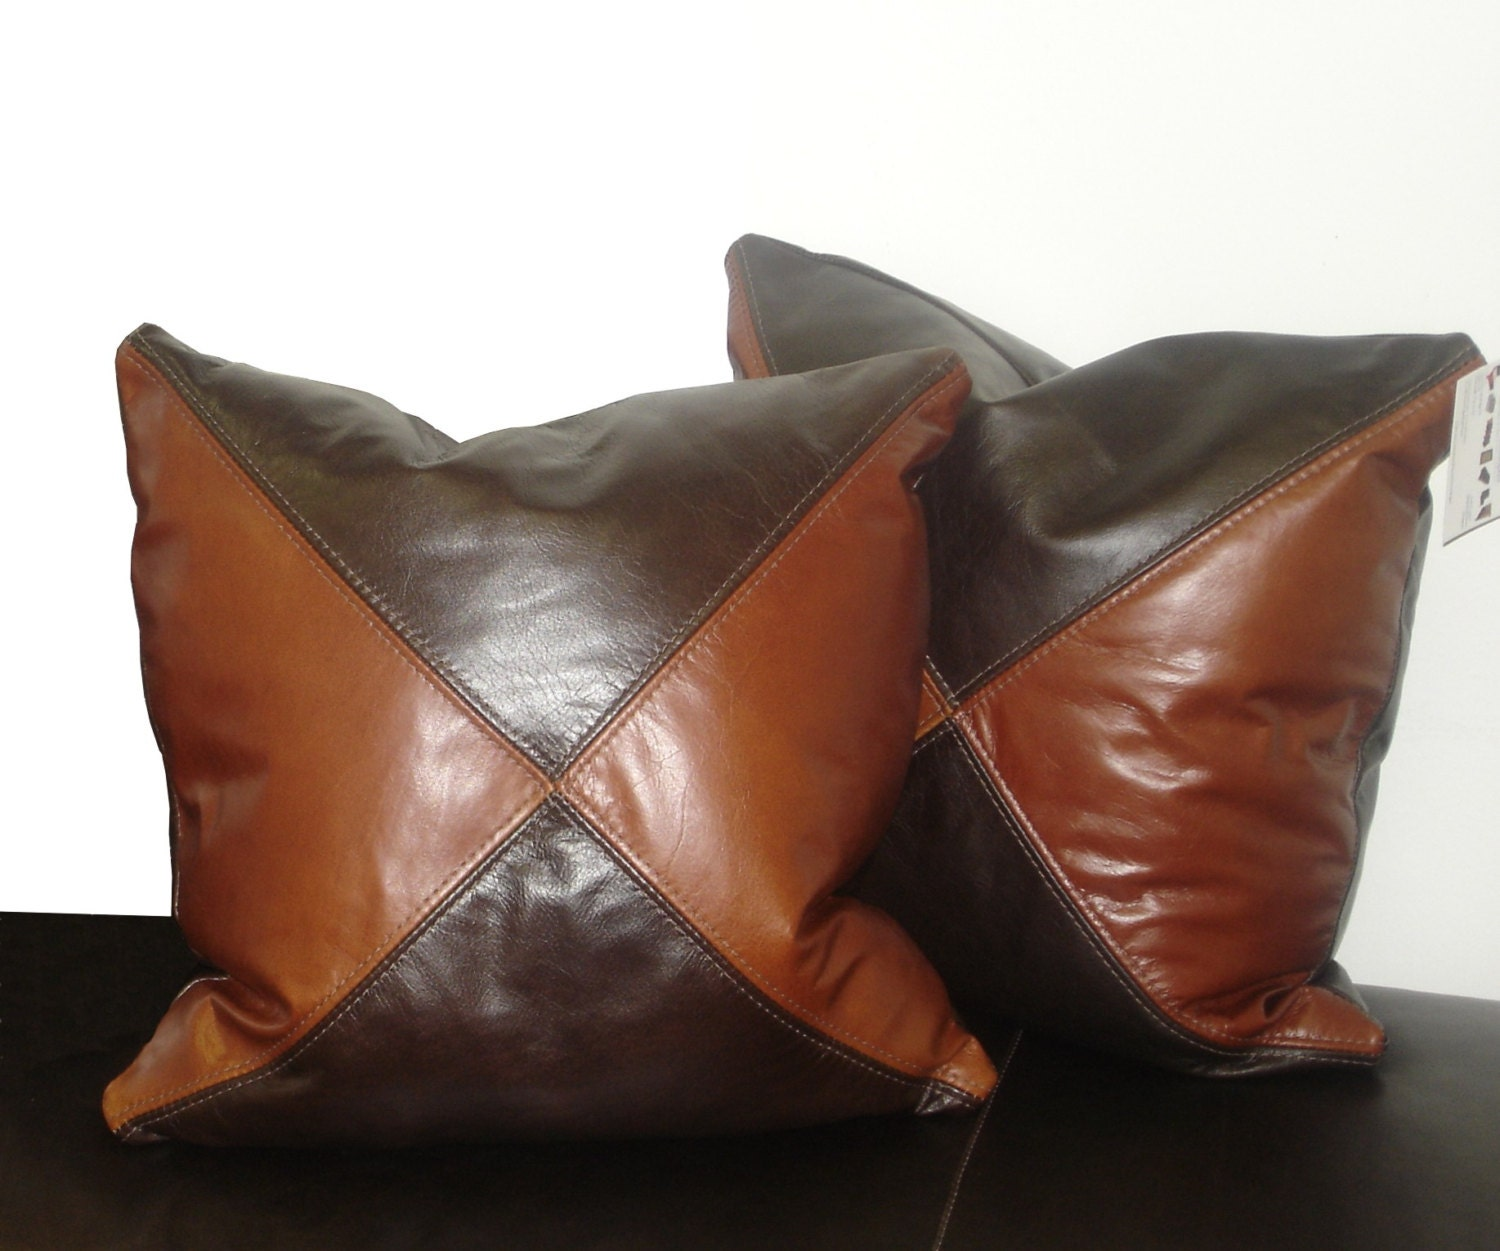 95 decorative pillows leather leather sofa decorative pillows sherry kline gator faux 20 Leather sofa throws